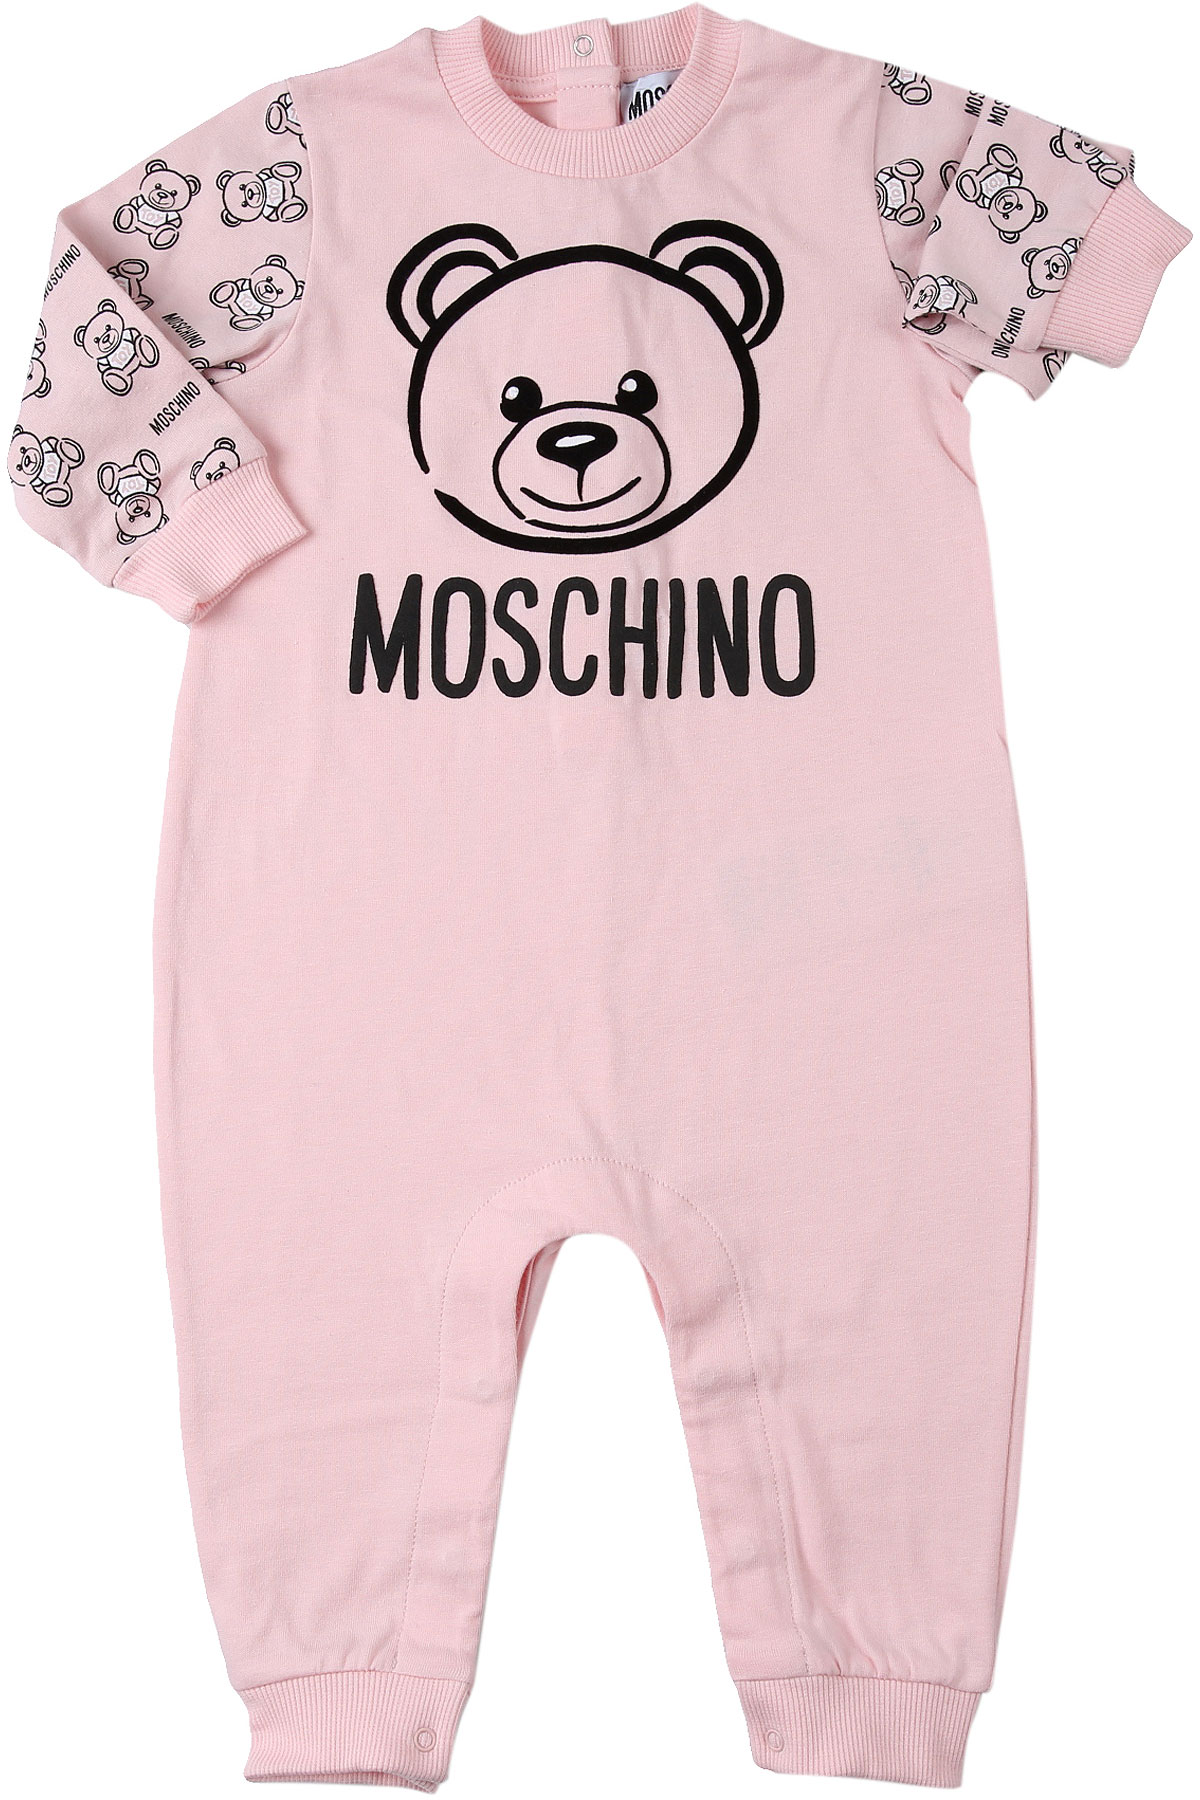 Moschino Baby Bodysuits & Onesies for Girls On Sale, Pink, Cotton, 2019, 6M 9M